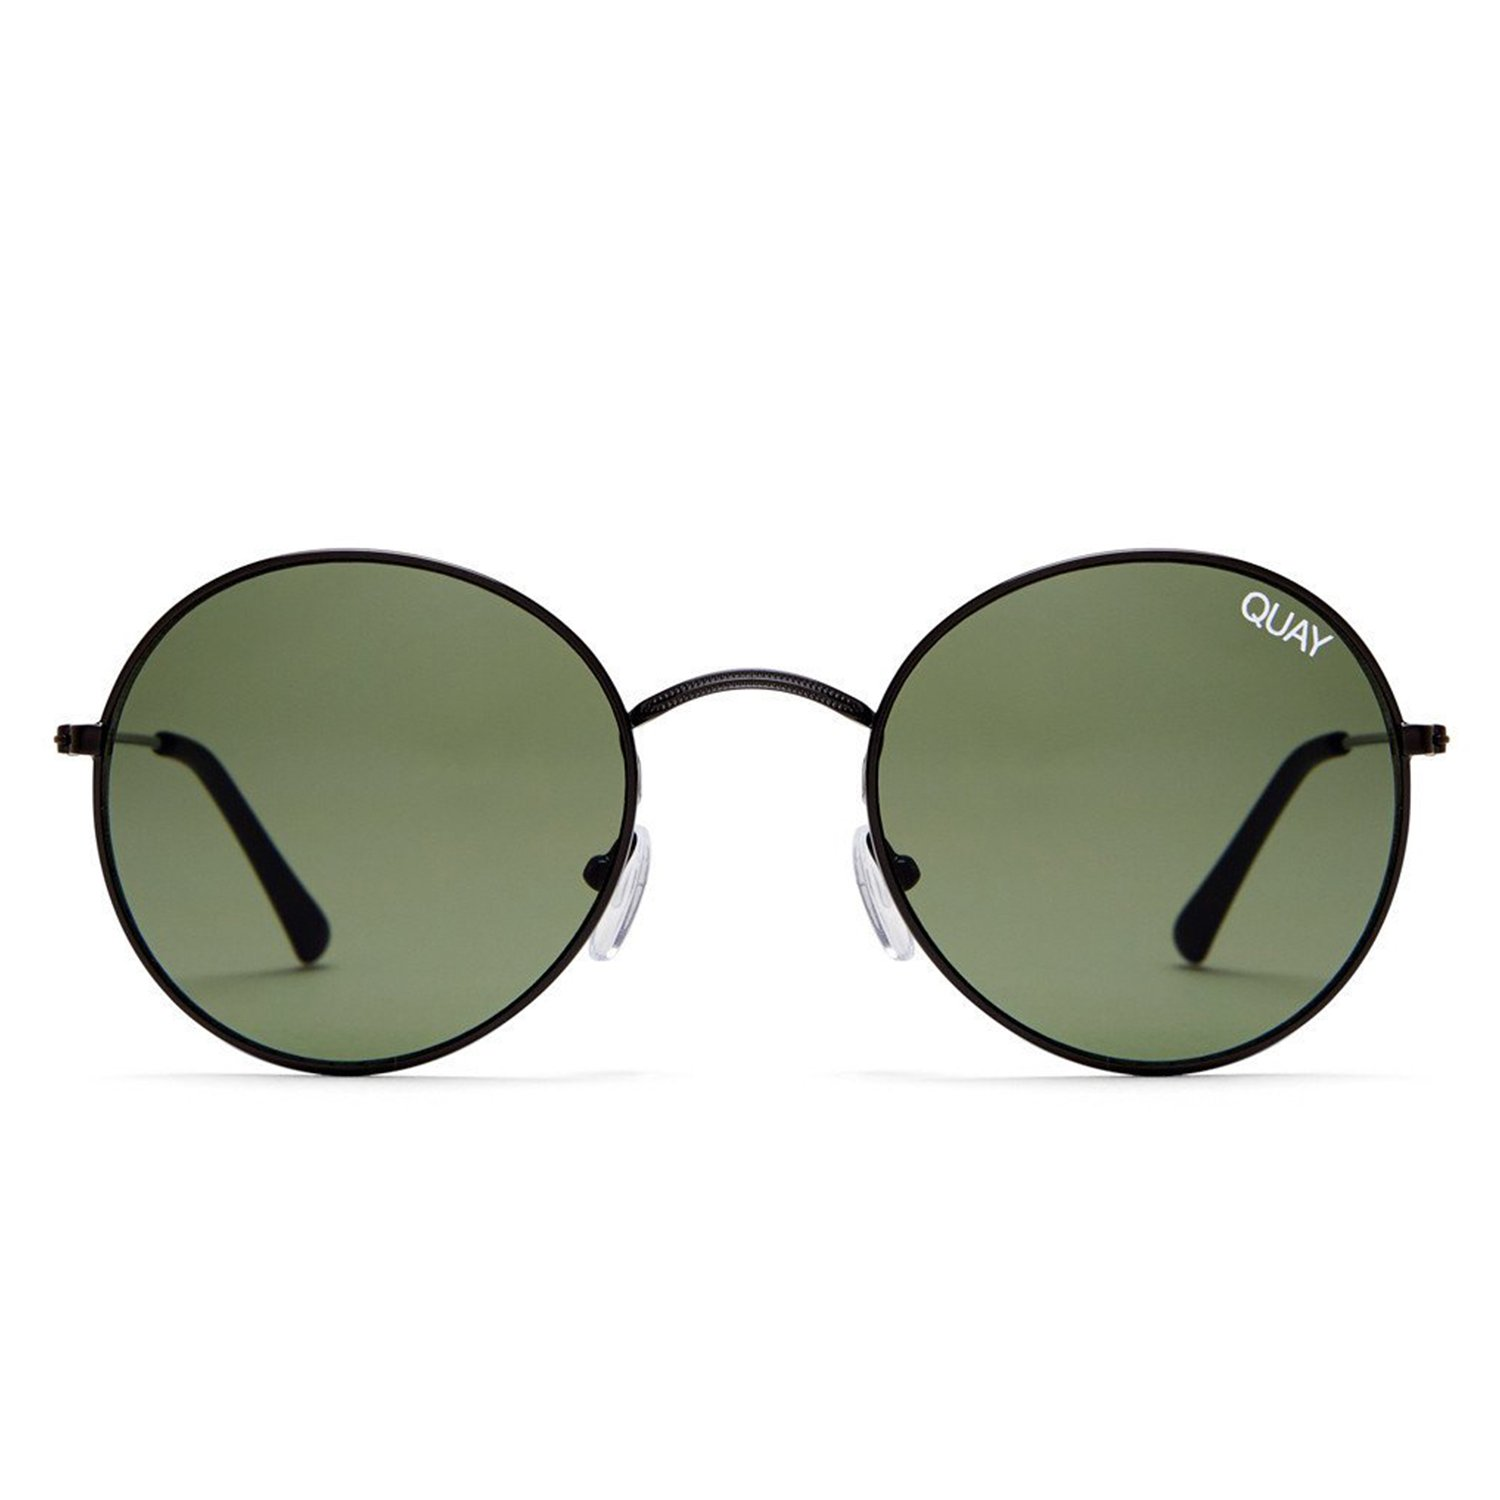 69c367b0ef Amazon.com  Quay Australia MOD STAR Women s Sunglasses Vintage Small Round  - Black Green  Clothing